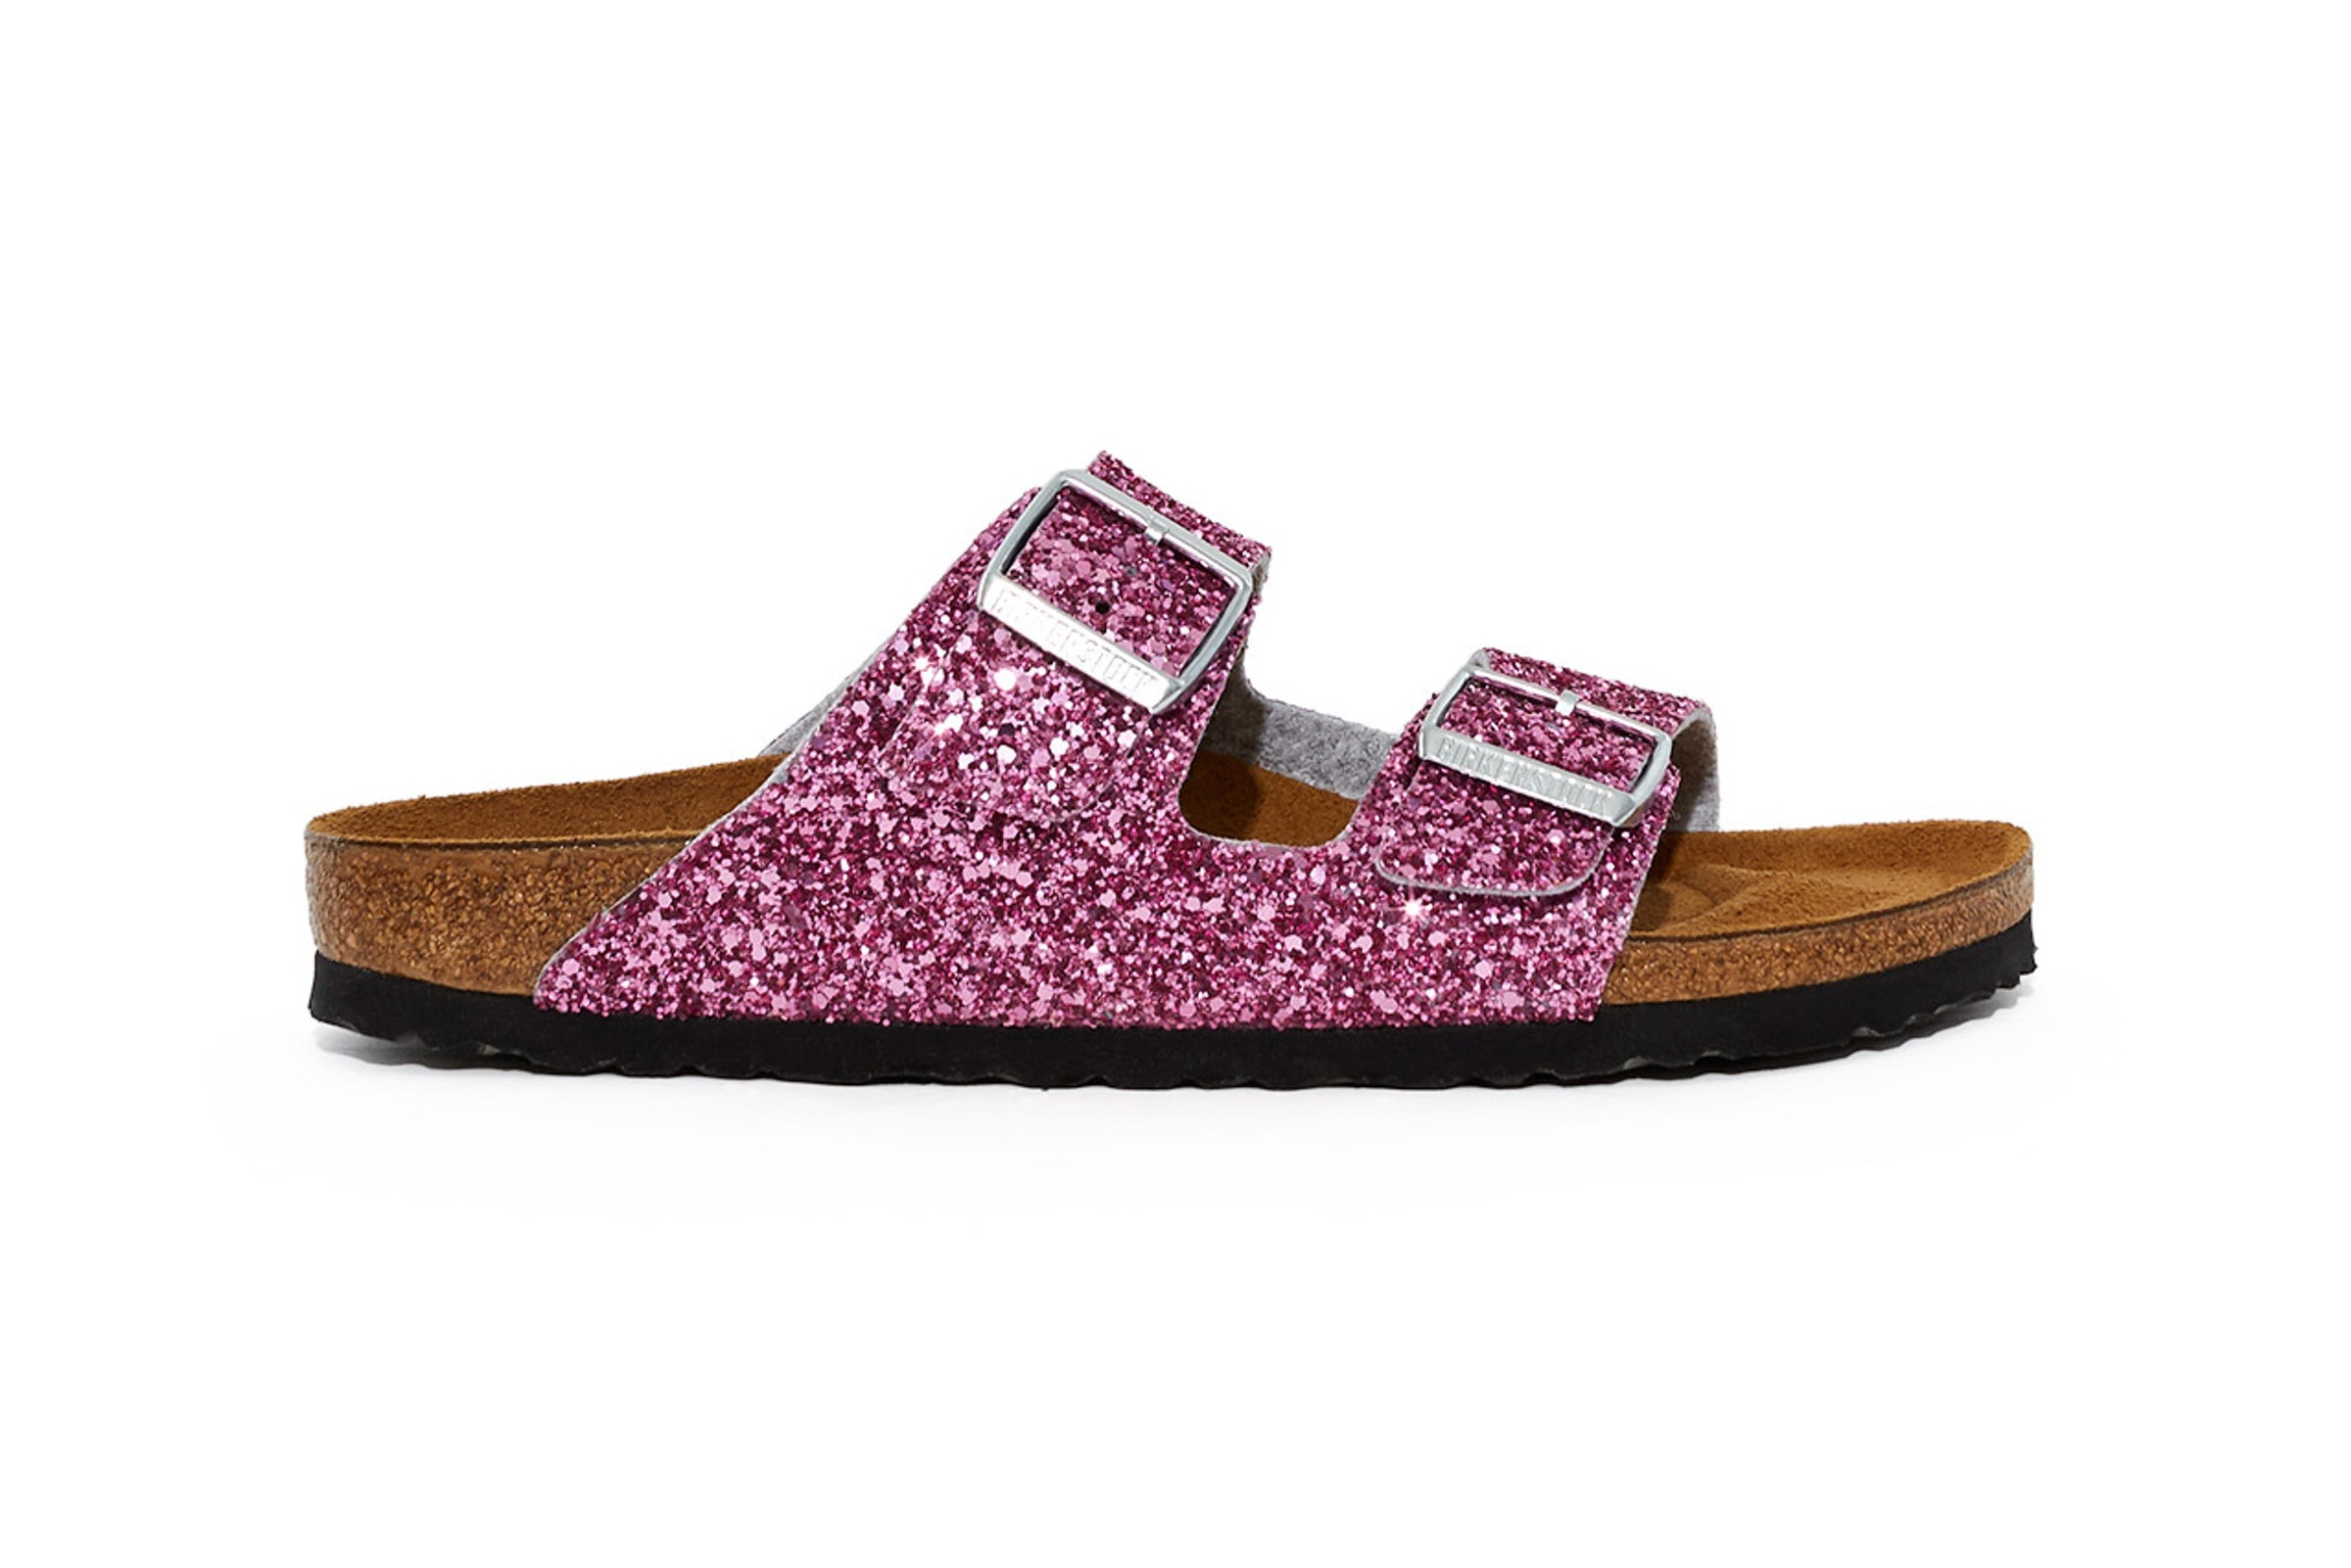 Ceremony's Have Stars You Glitter Seeing Will Opening Birkenstocks 8PZwNXn0Ok